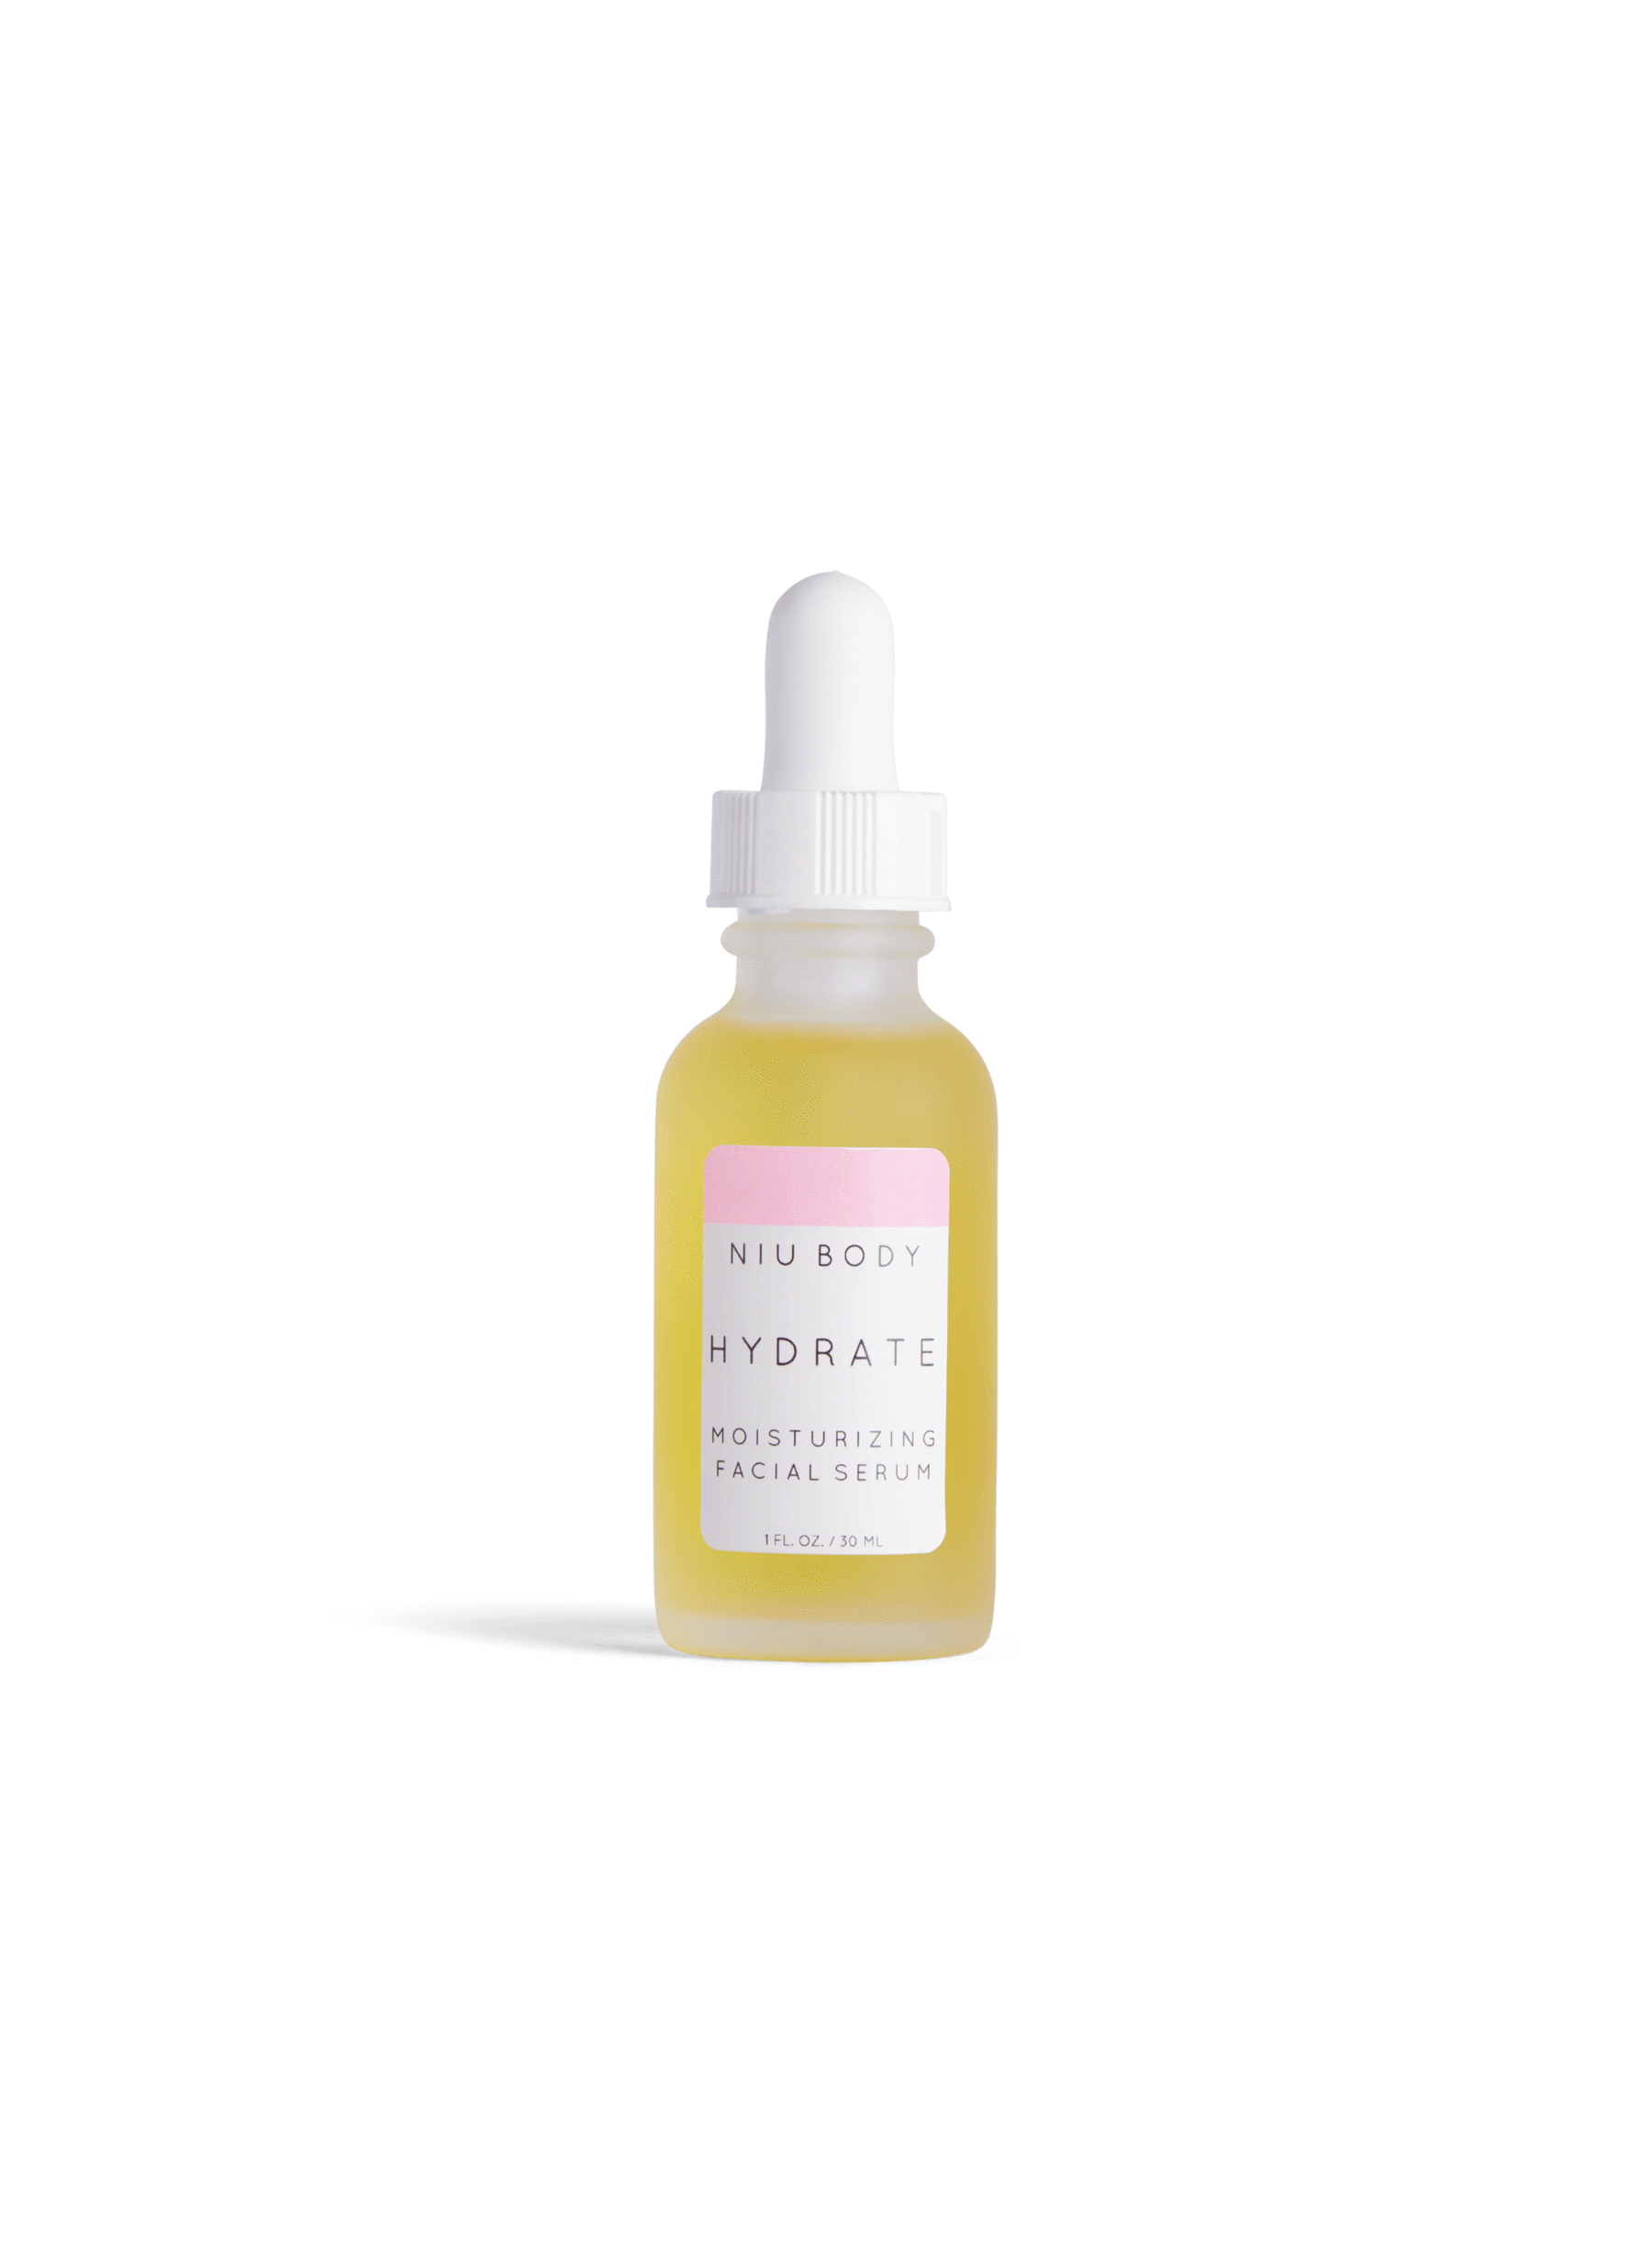 Hydrate Facial Serum